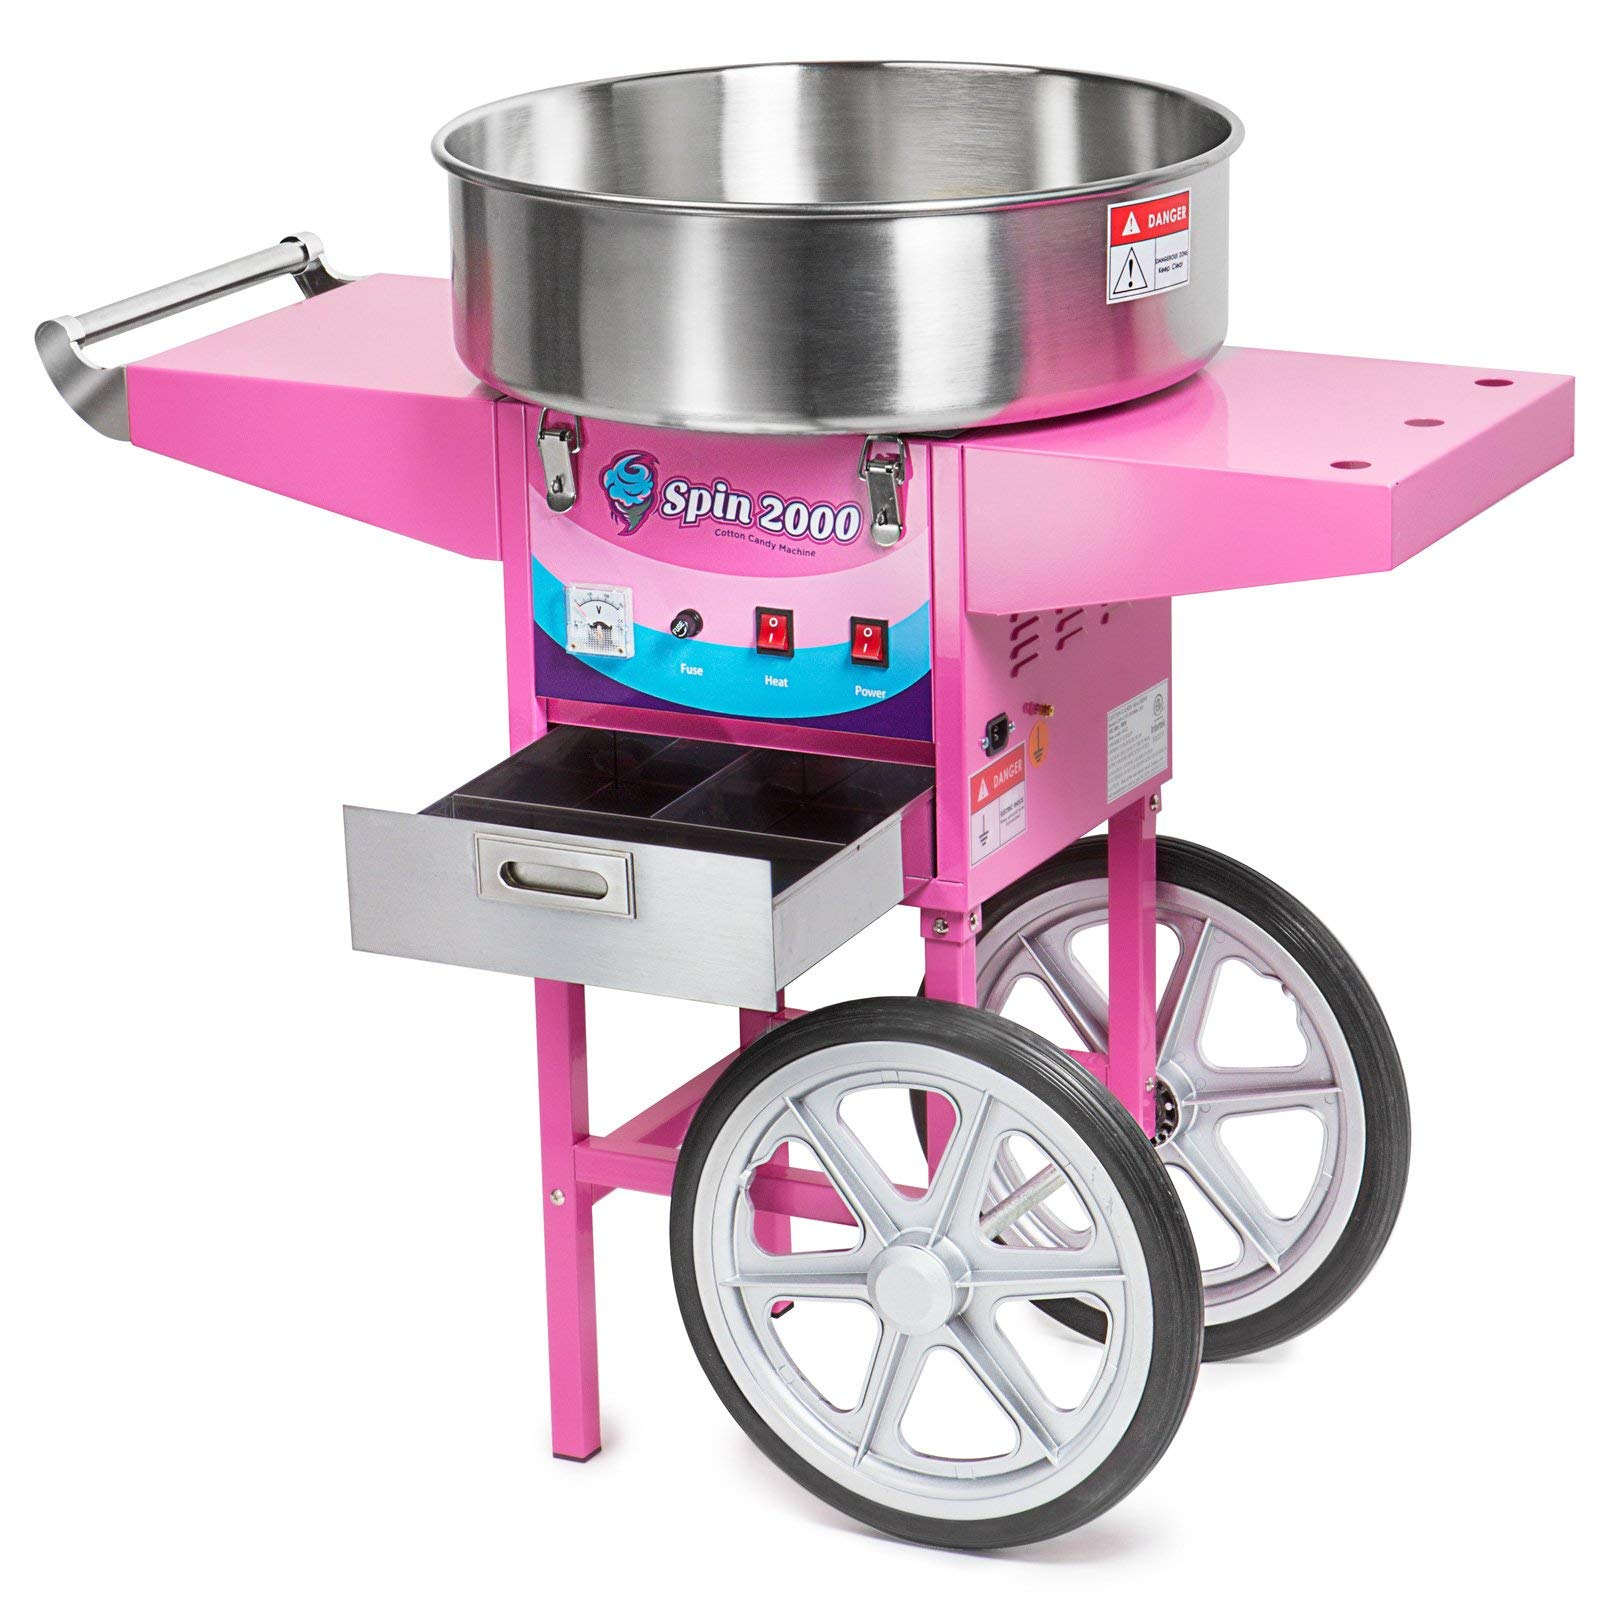 Olde Midway Commercial Quality Cotton Candy Machine Cart and Electric Candy Floss Maker - SPIN 2000 (Renewed) by Olde Midway (Image #5)